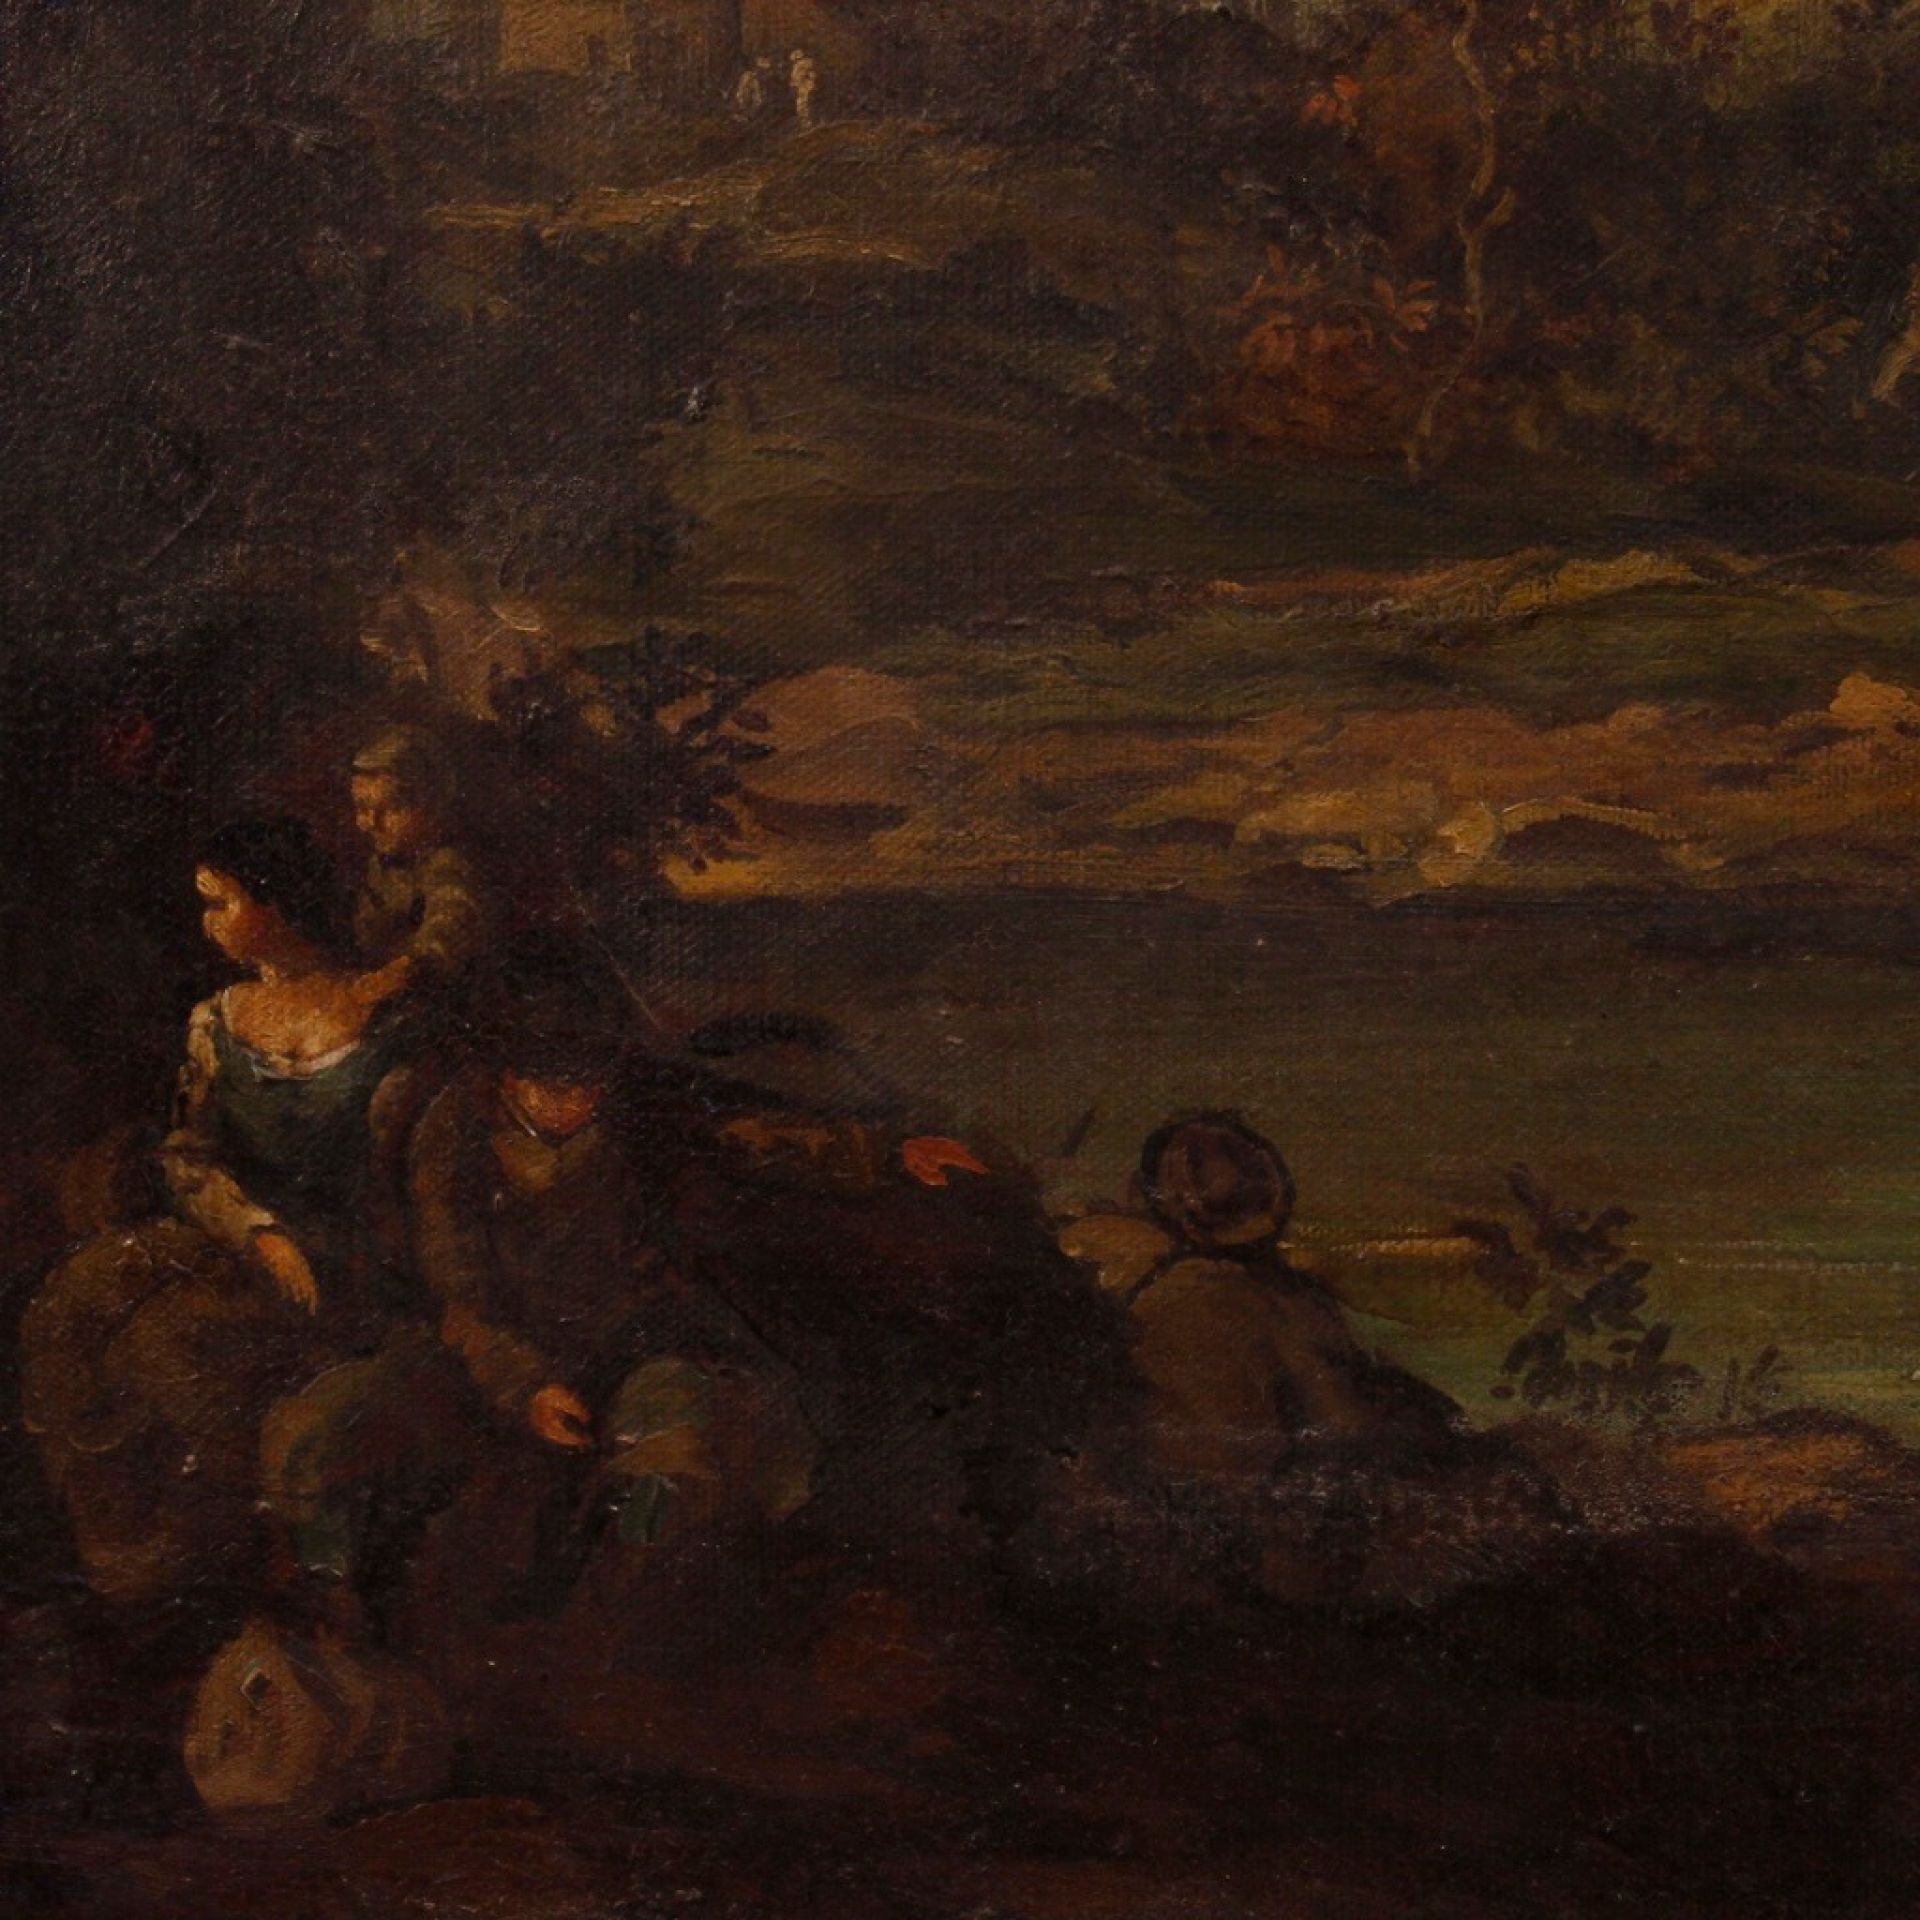 20th Century Oil on Canvas Italian Landscape with Characters Painting, 1970